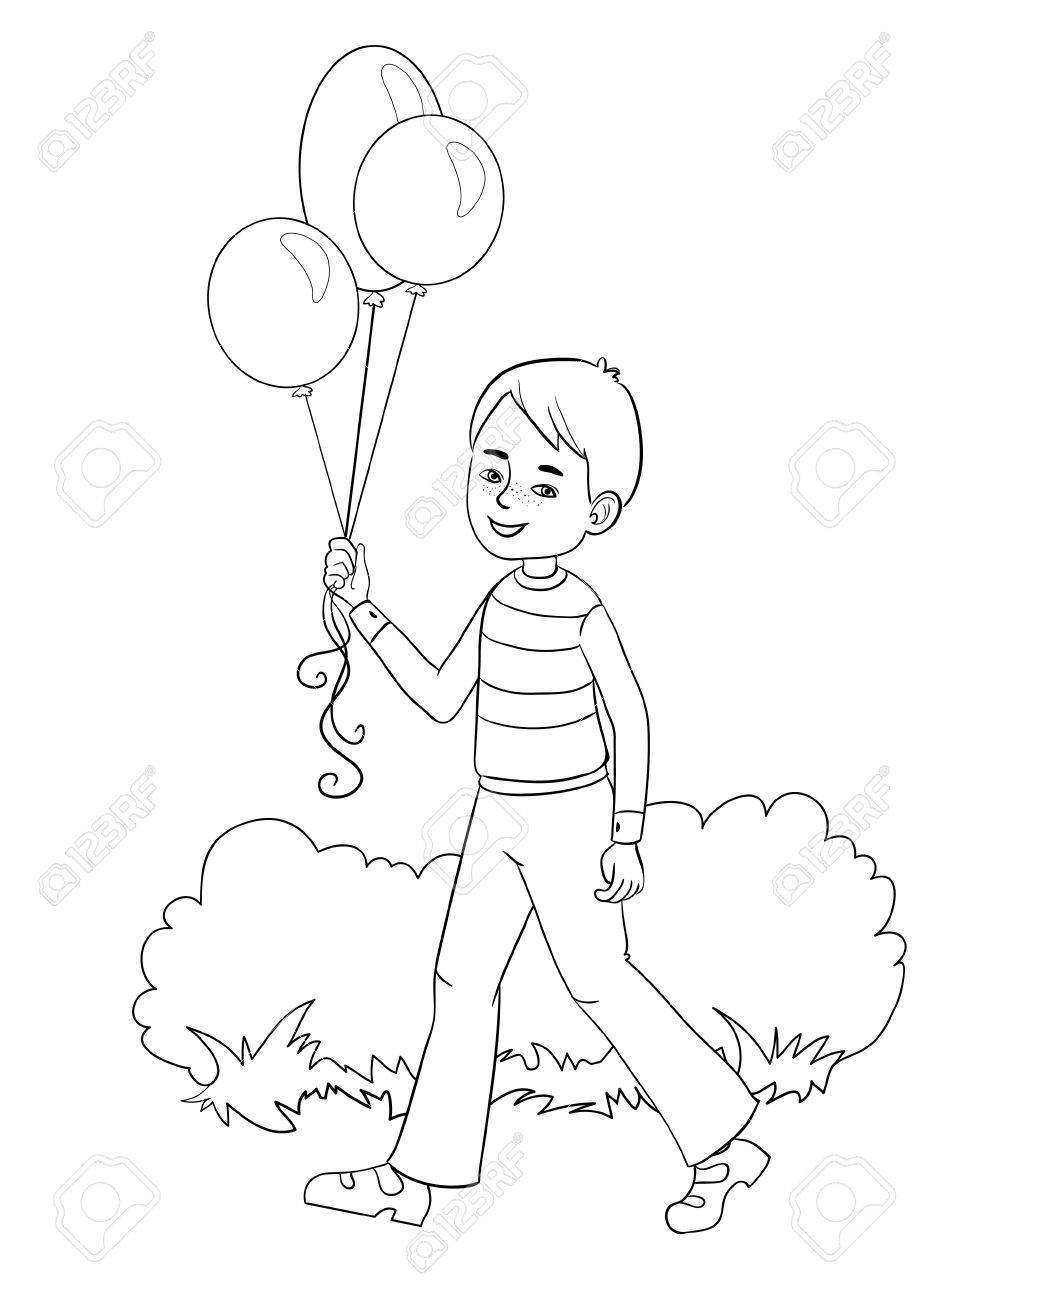 Boy with balloons in hand, image, outline isolated on white.